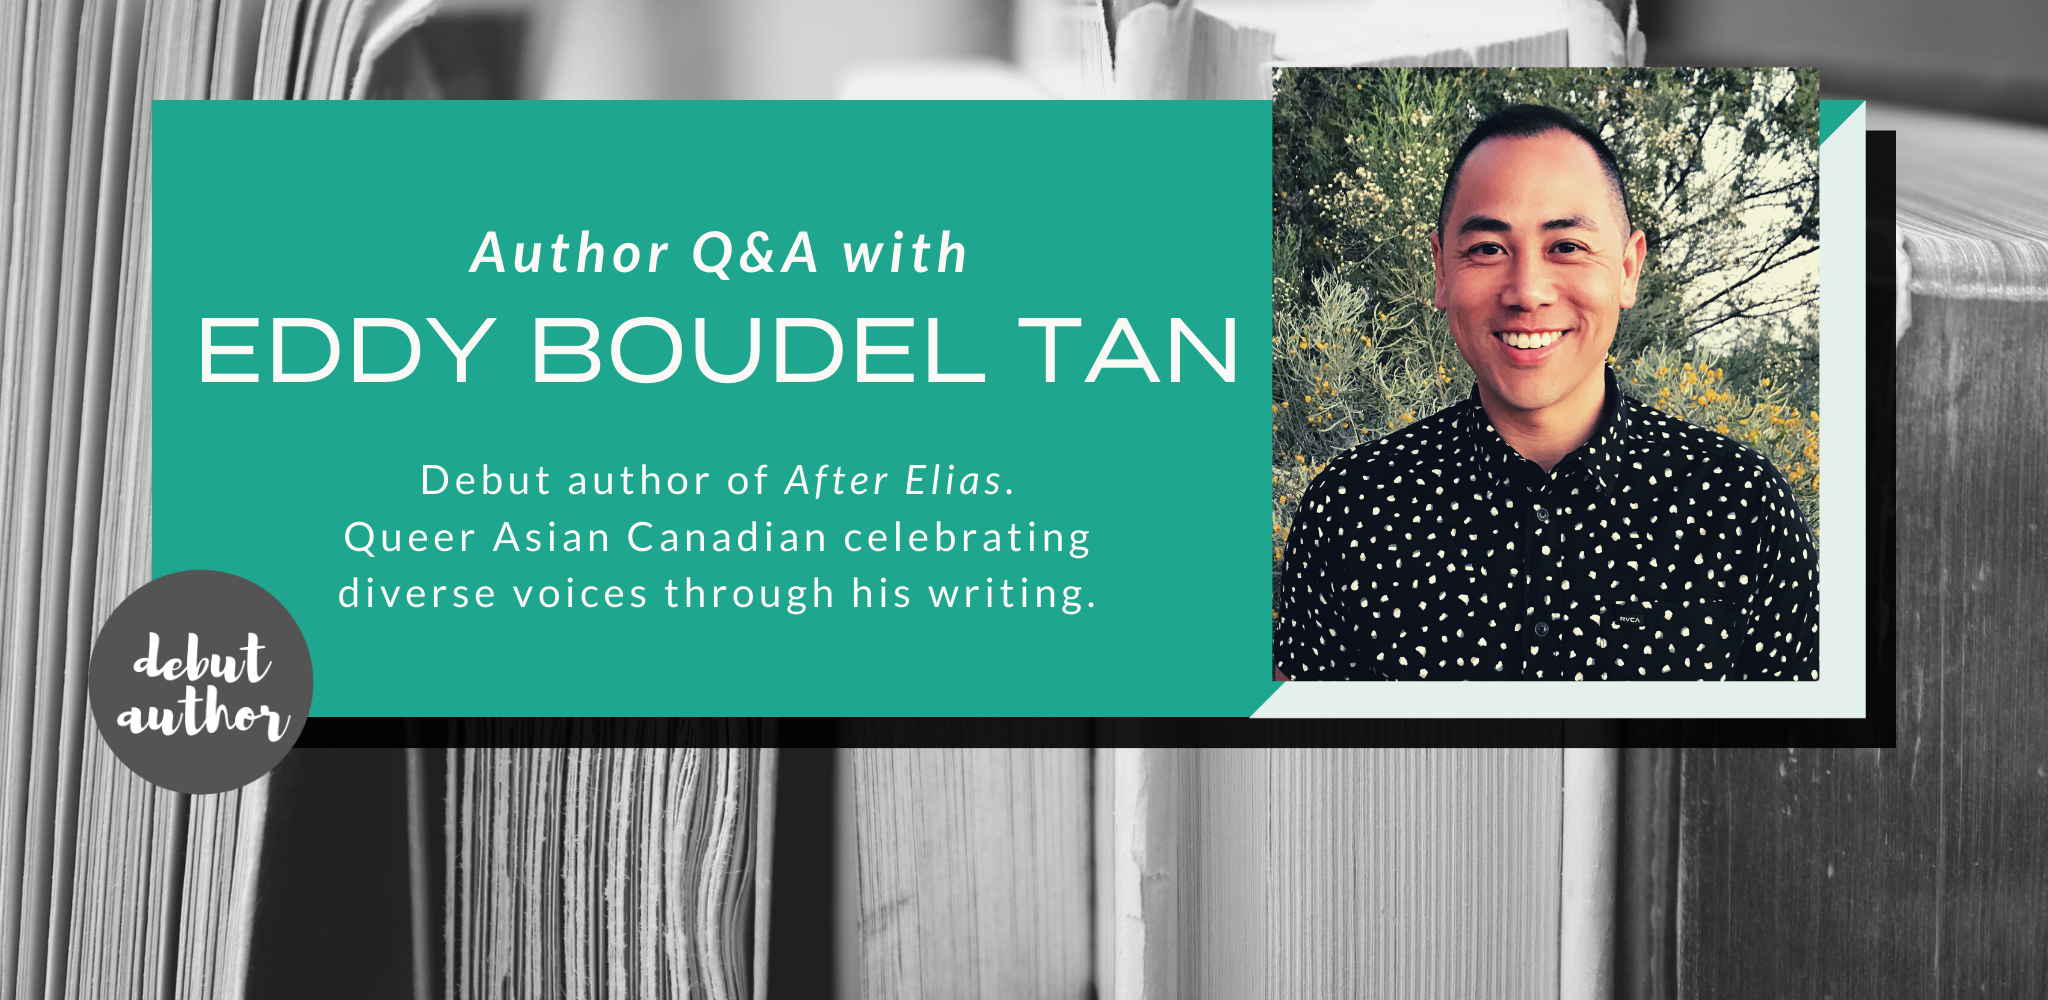 Q&A with Eddy Boudel Tan